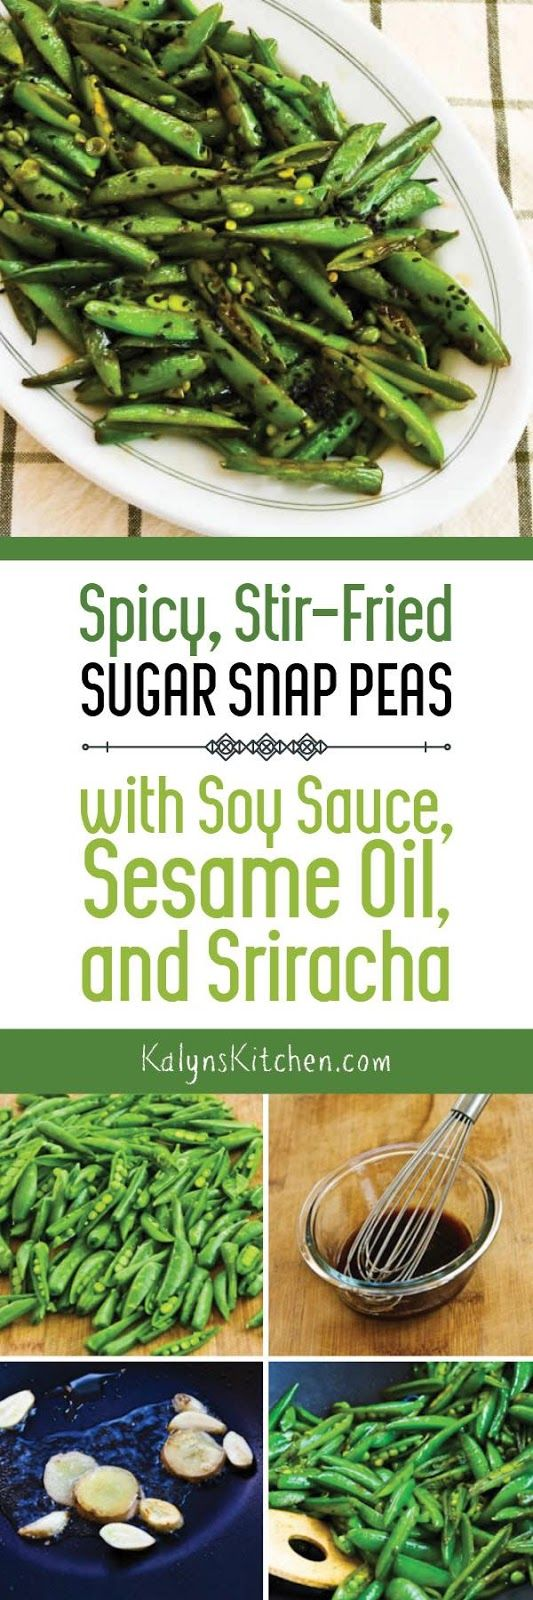 If you buy those big bags of sugar snap peas from Costco, you MUST TRY this amazing recipe for Spicy Stir-Fried Sugar Snap Peas with Soy Sauce, Sesame Oil, and Sriracha! And this vegan stir fry is also low-carb, gluten-free, dairy-free, and South Beach Diet friendly. [found on KalynsKitchen.com]